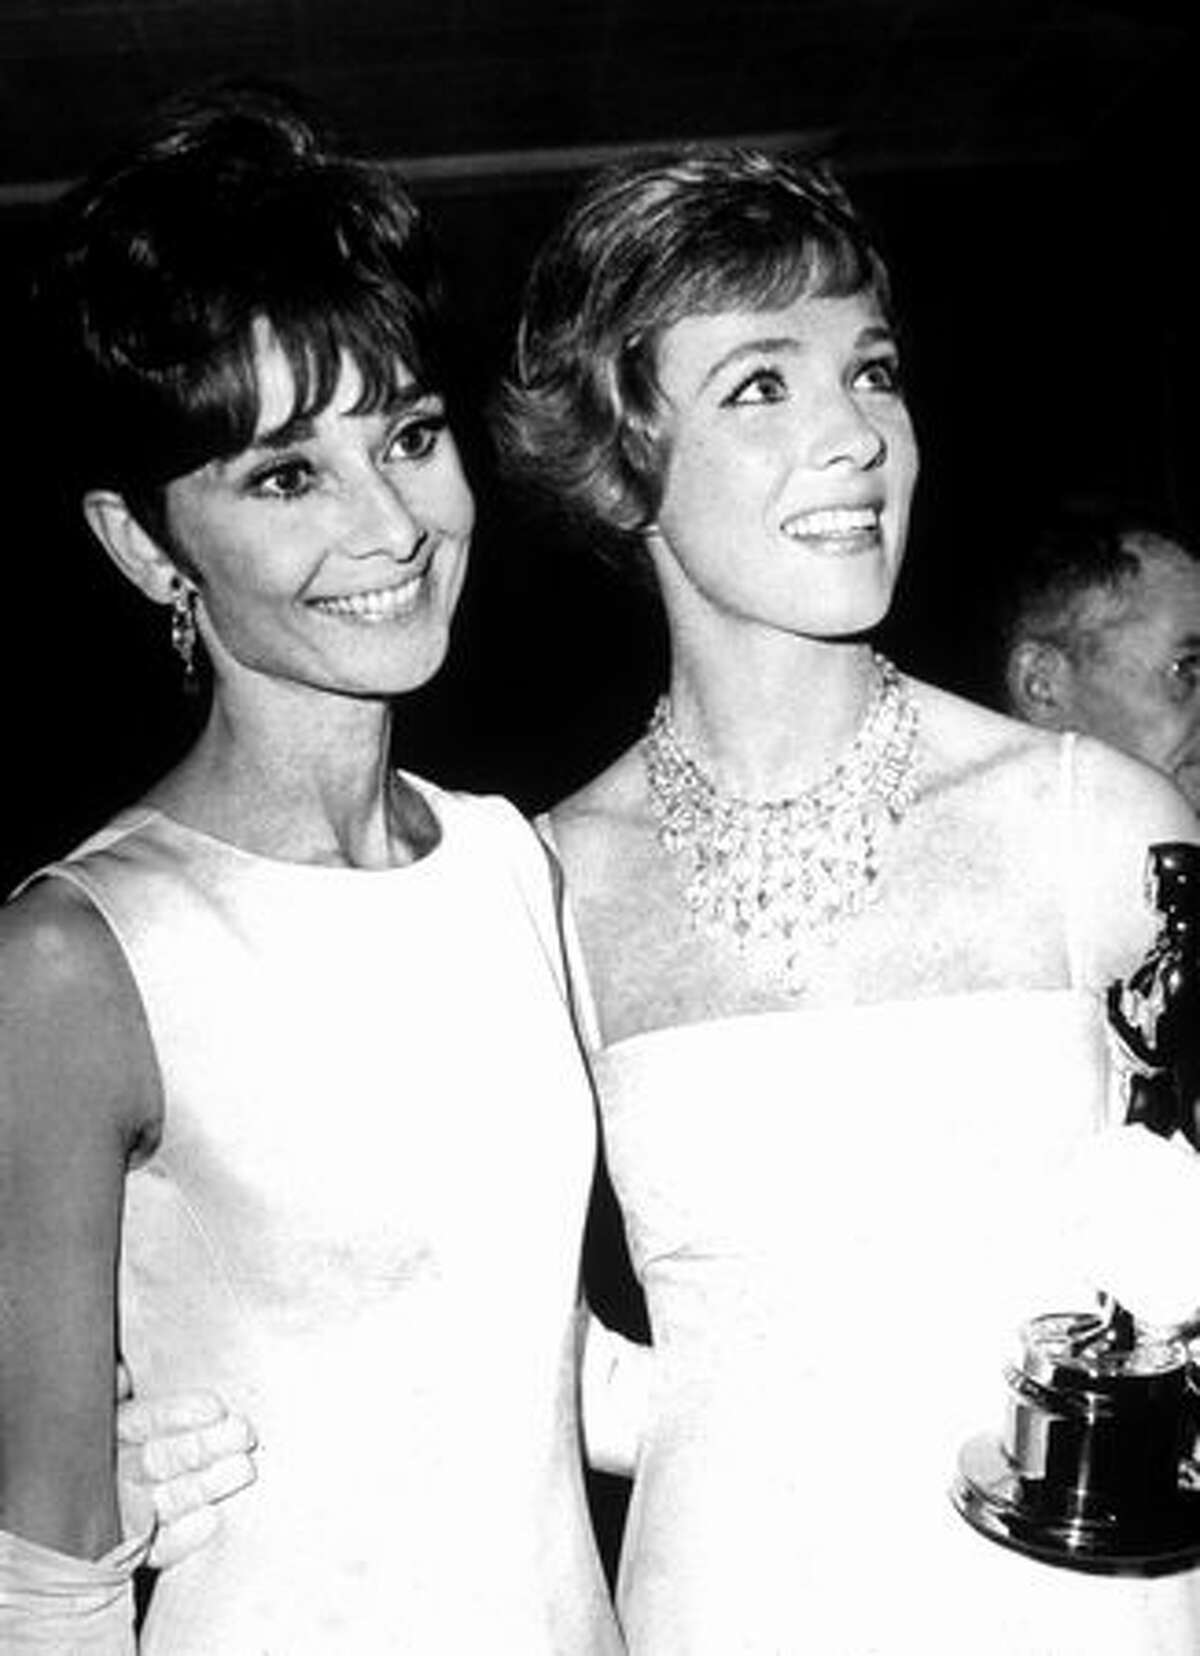 1965: Actress Julie Andrews (right) holds her Oscar while standing with actress Audrey Hepburn (1929 - 1983) at the Academy Awards ceremonies in Santa Monica, Calif. Andrews won Best Actress for her performance in the film